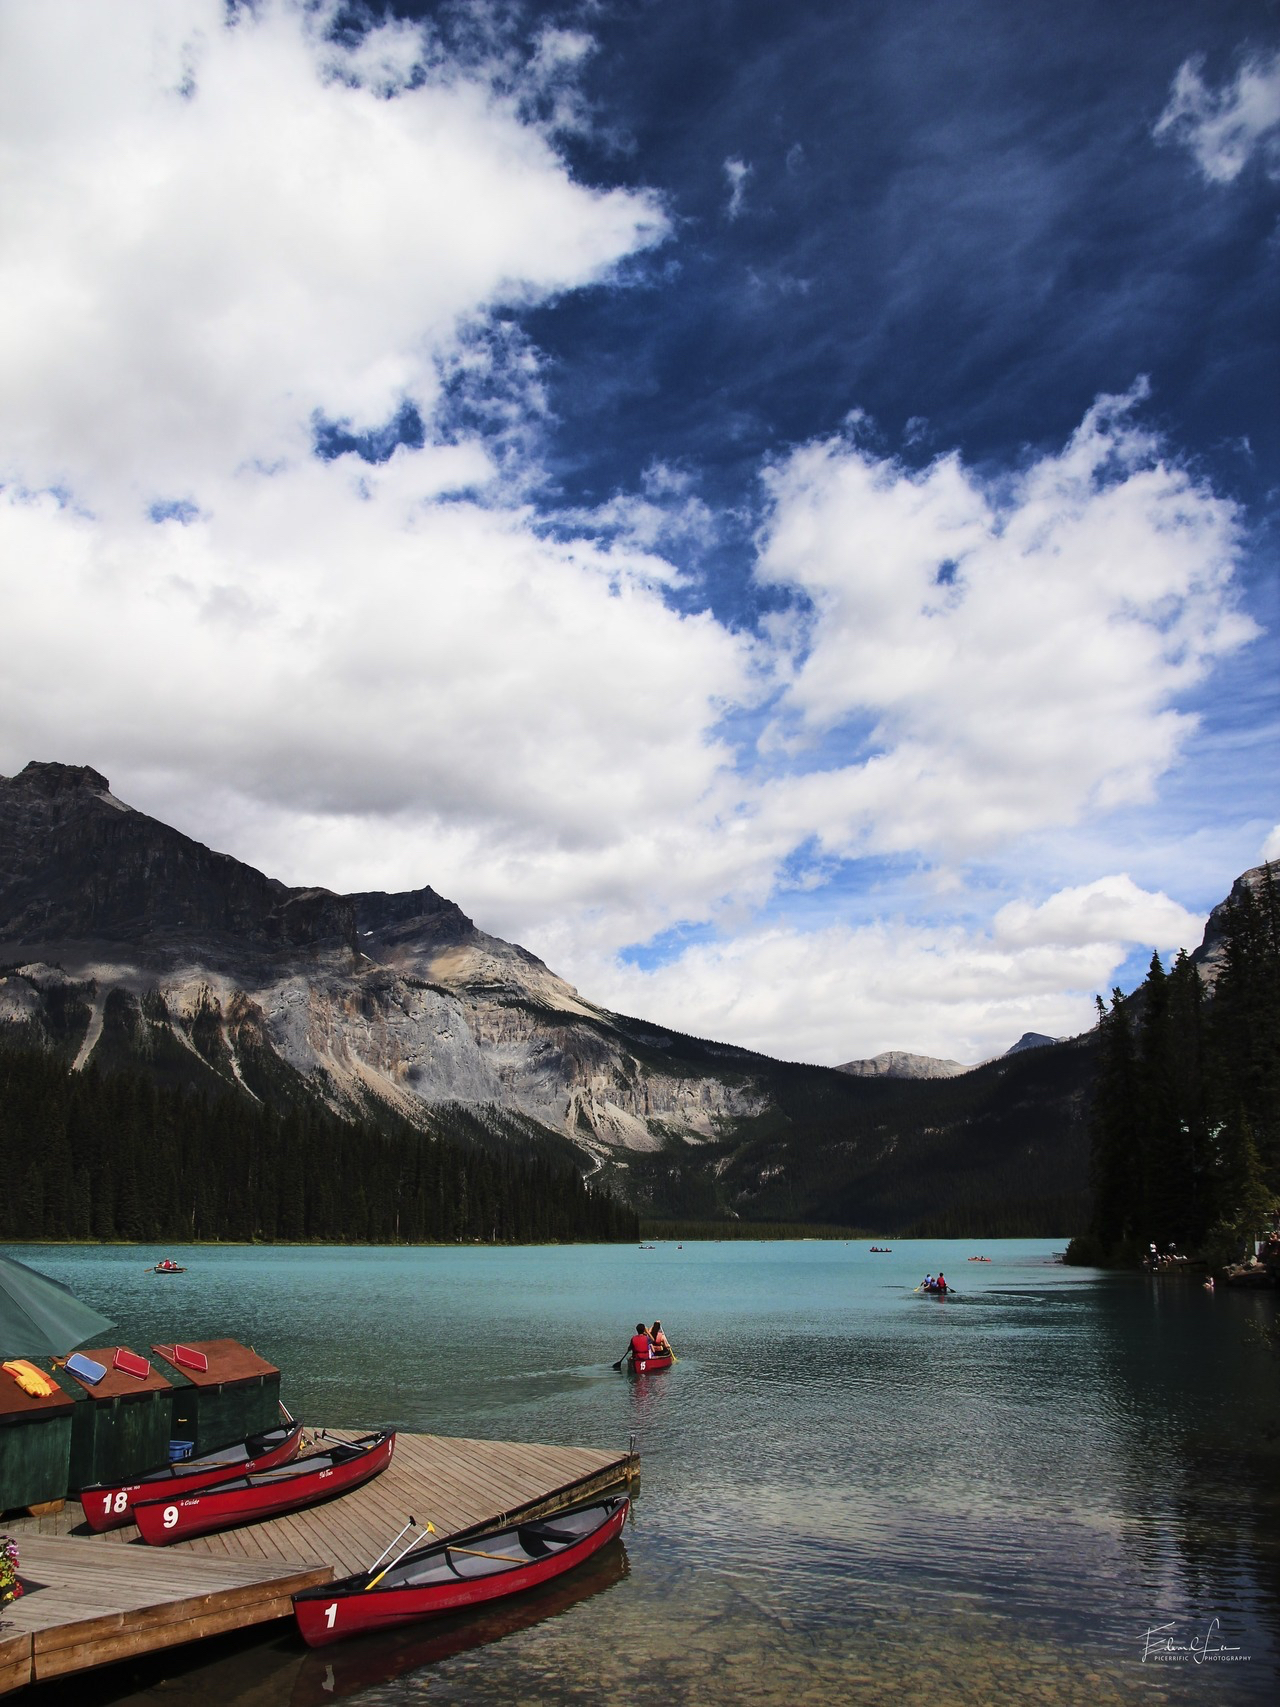 Red boats on Emerald Lake, 2013